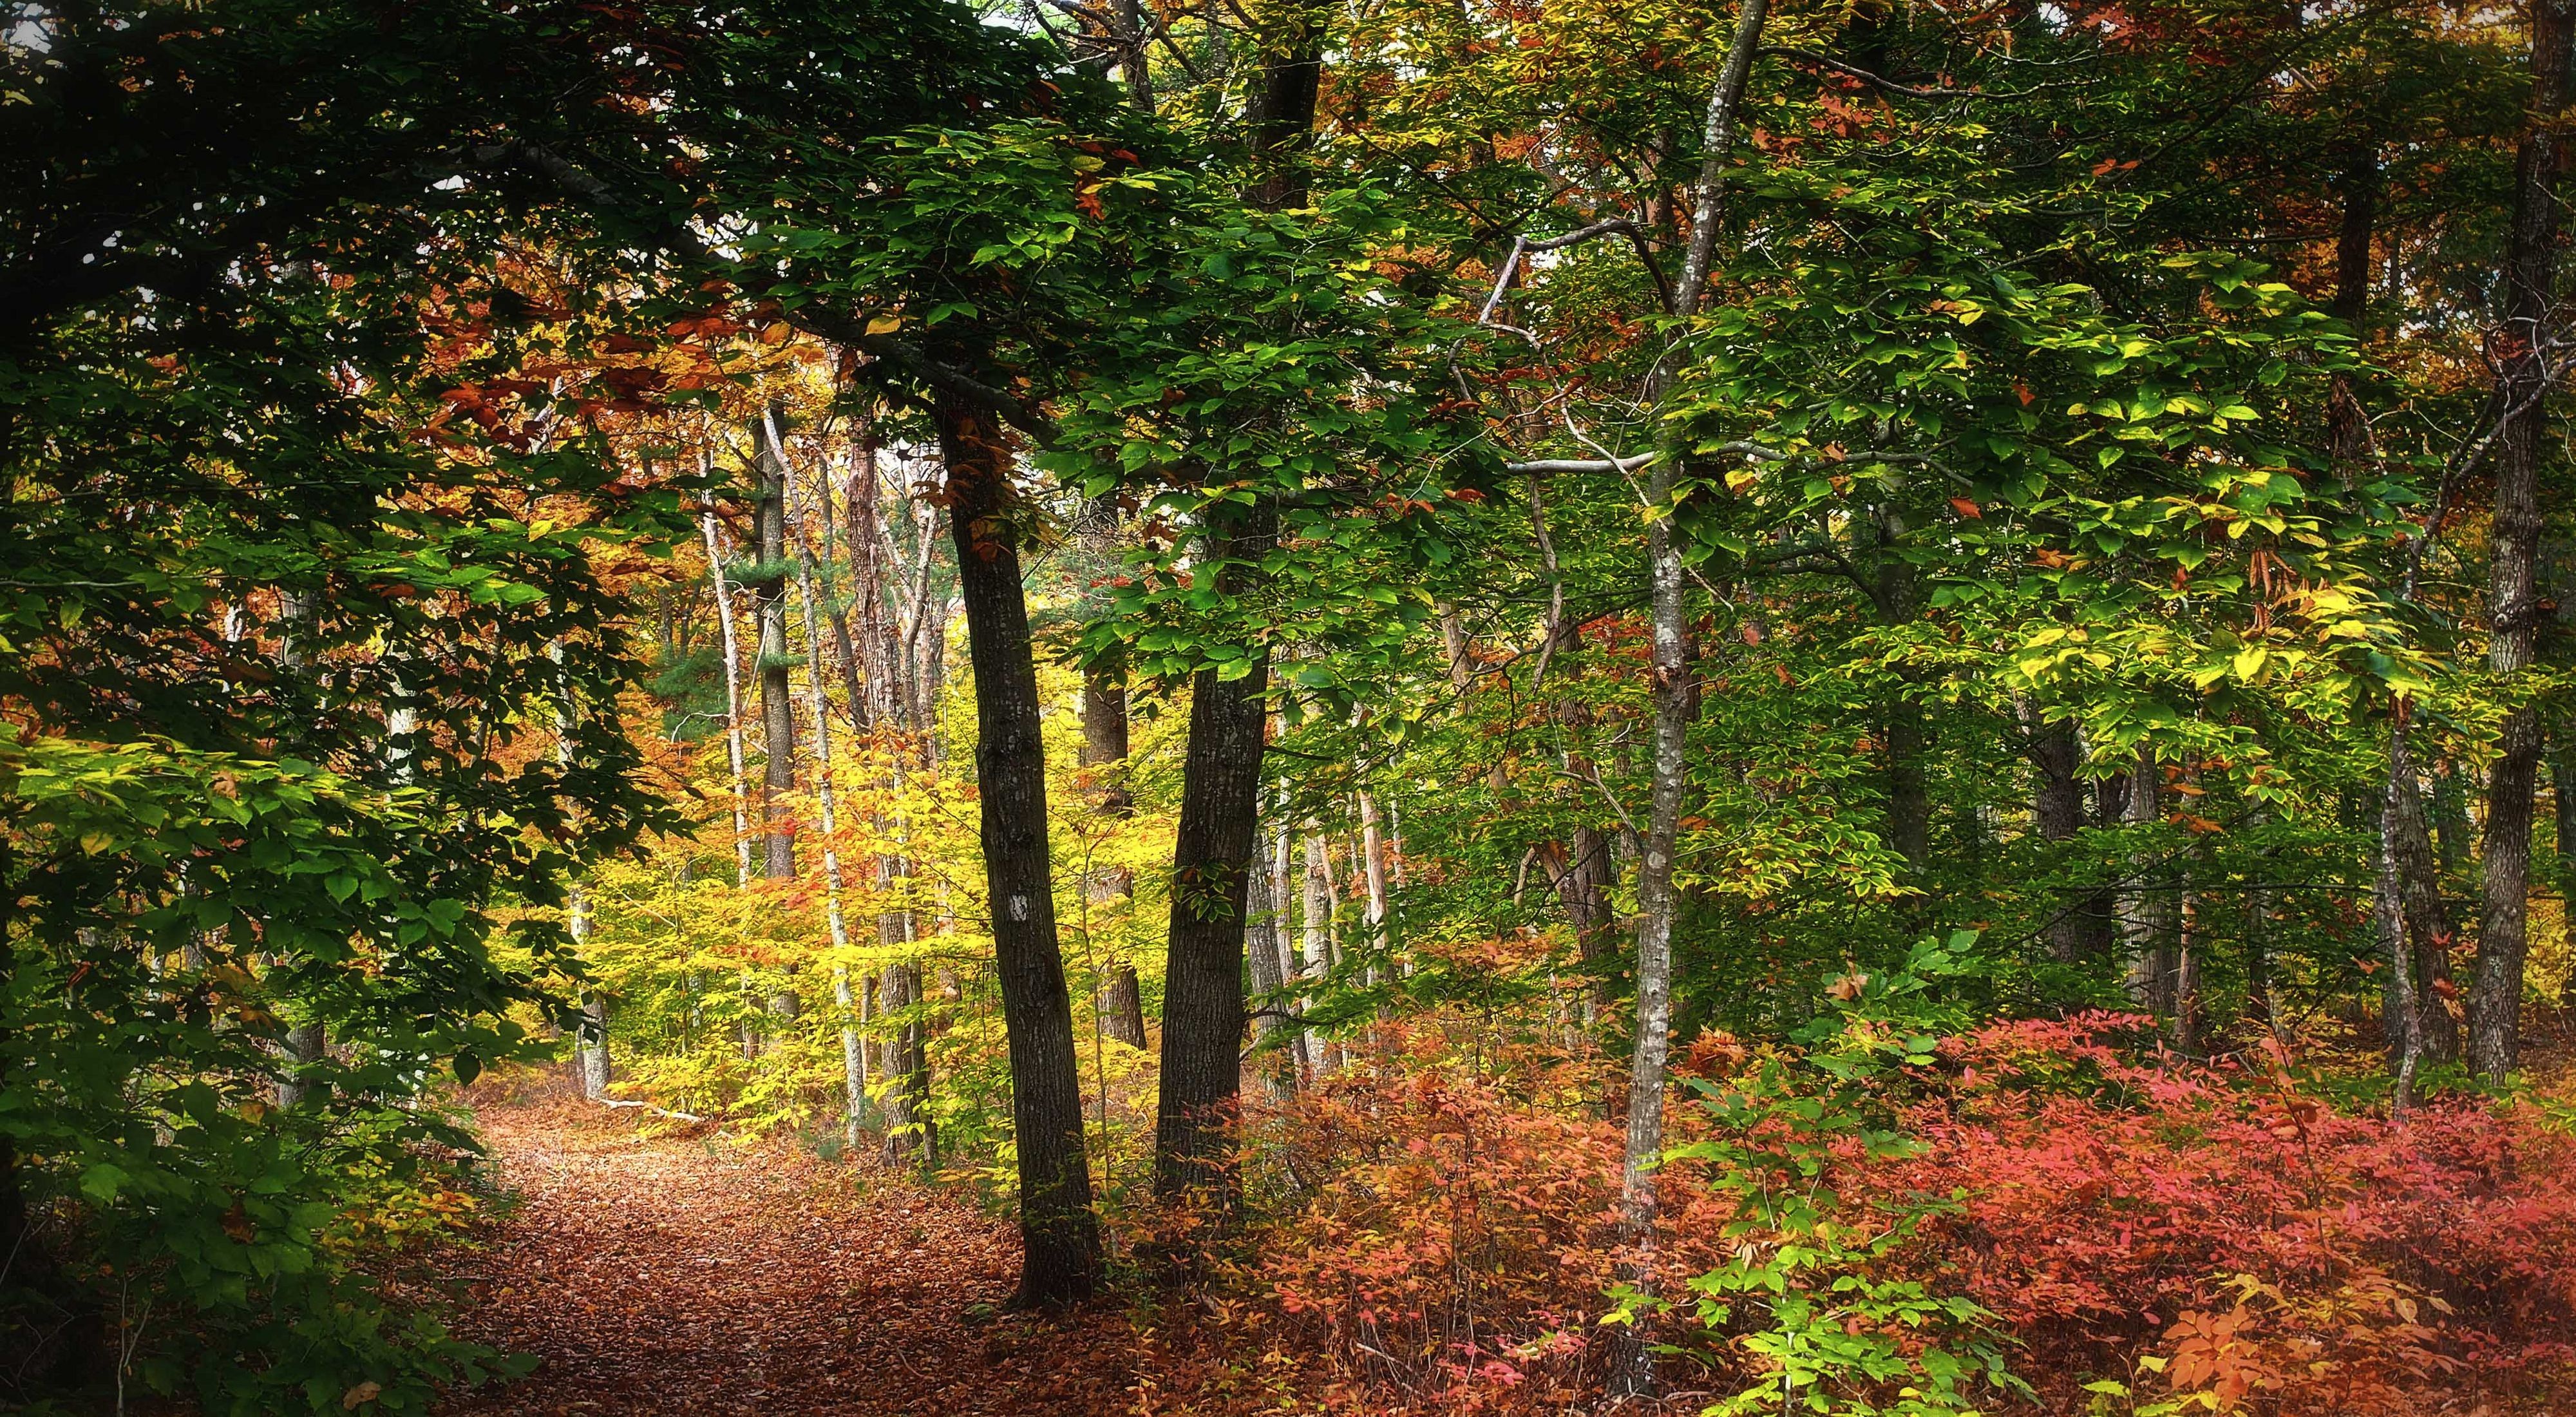 Looking into a forest with green, orange, and yellow colored tree leaves.